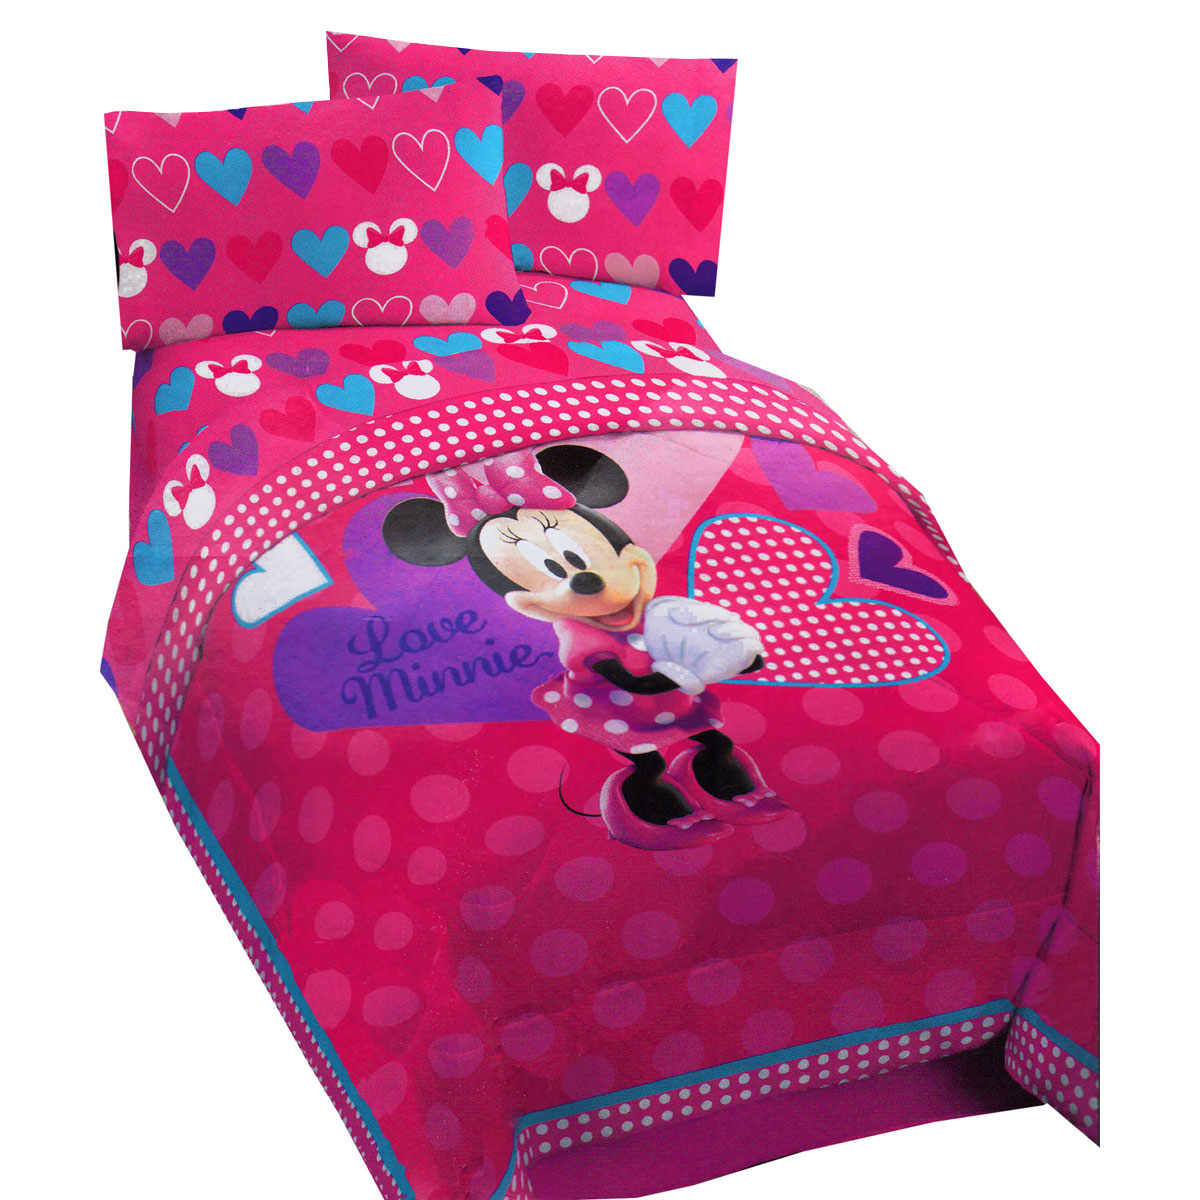 Disney Minnie Mouse Hearts Twin Comforter